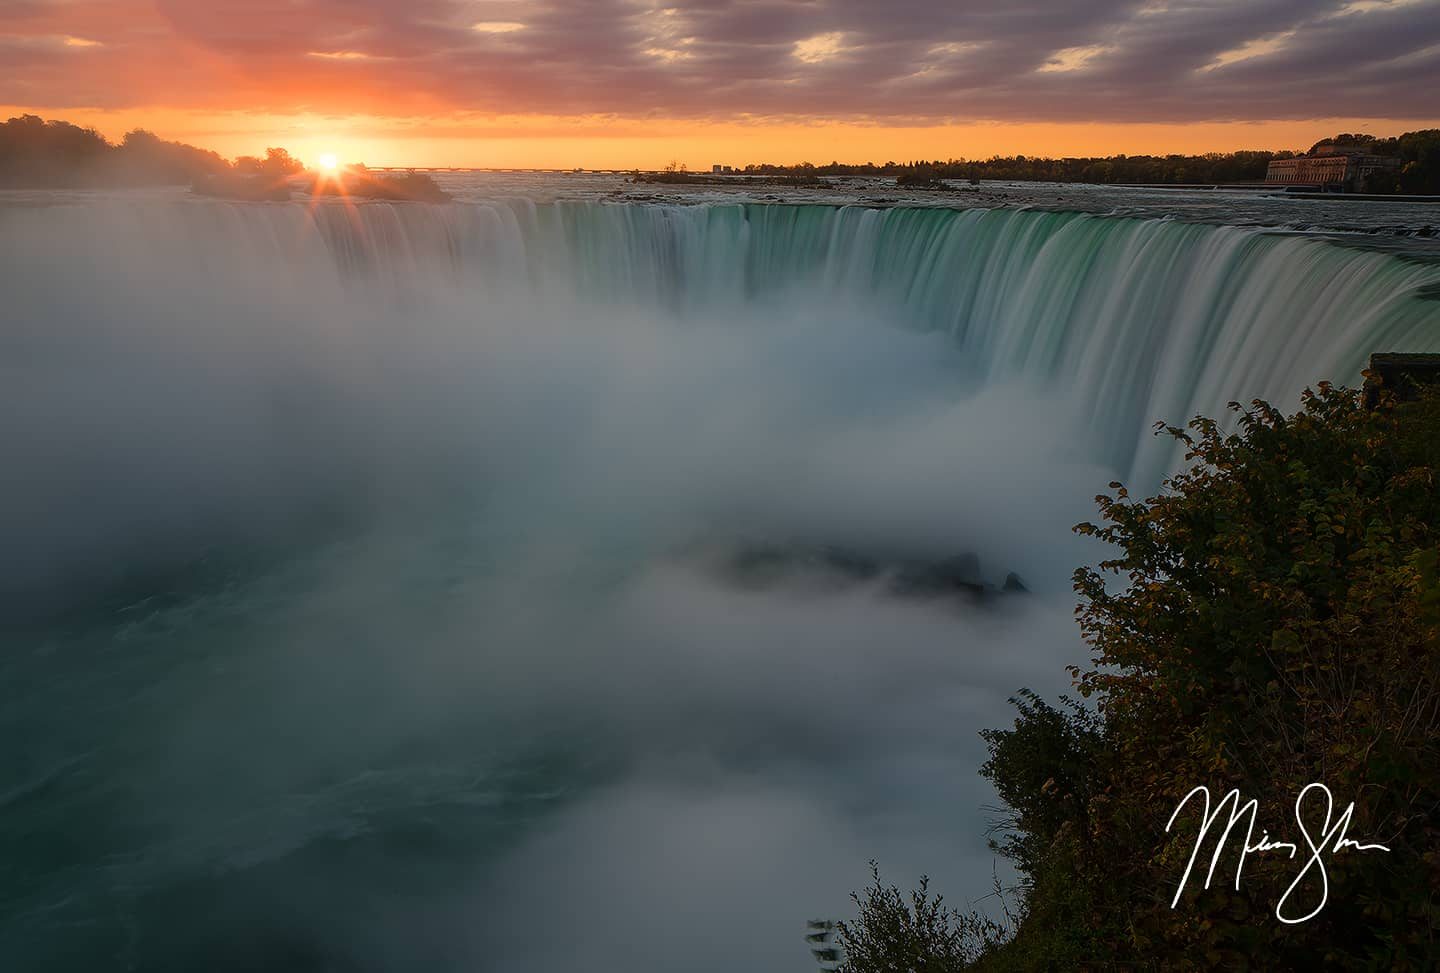 Open edition fine art print of Horseshoe Falls Sunrise at Niagara Falls from Mickey Shannon Photography. Location: Niagara Falls, Ontario, Canada